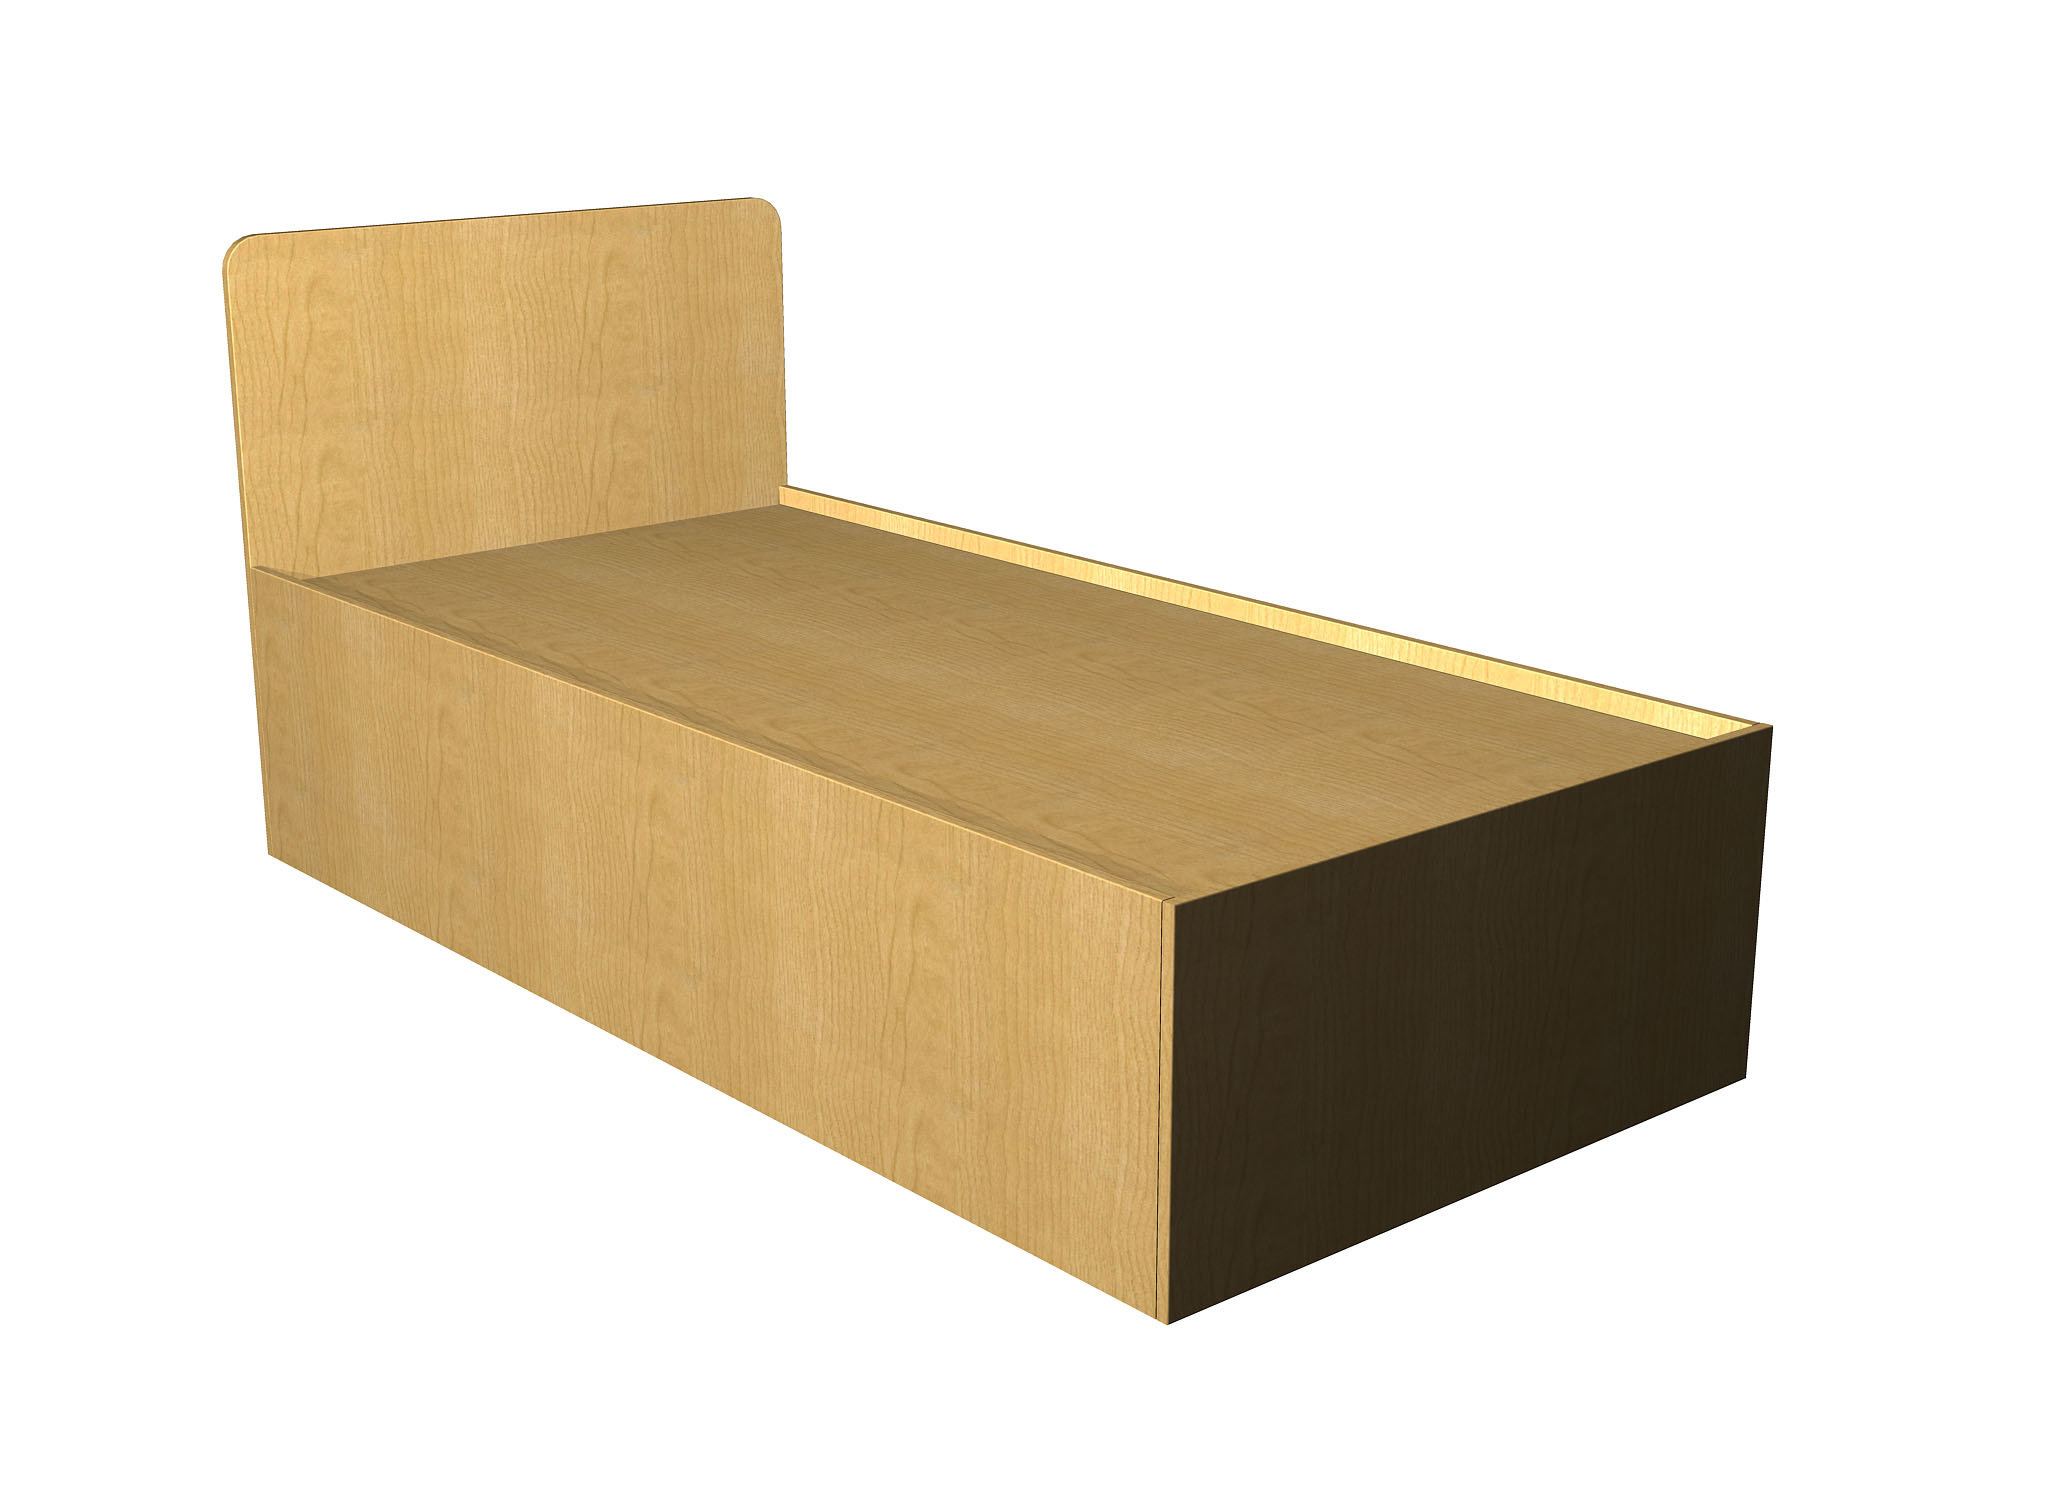 Bed Budget 3ft